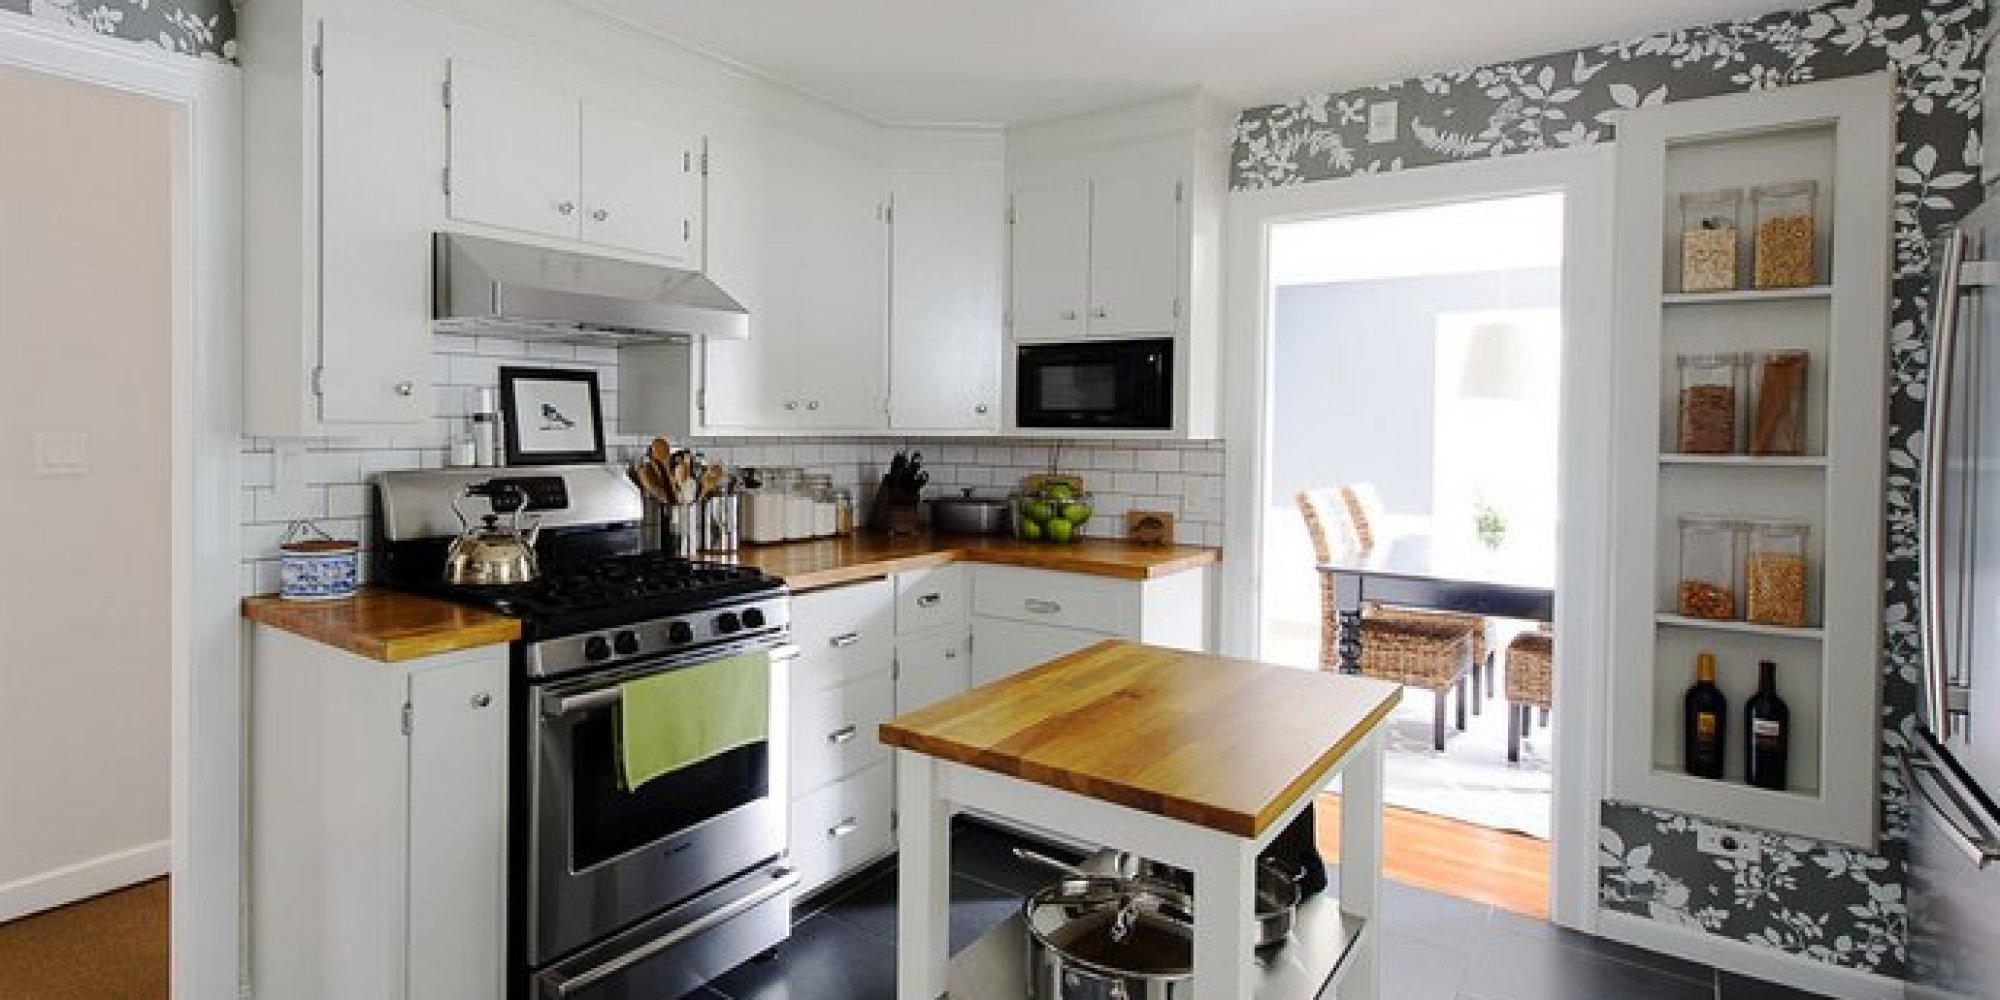 Updating Kitchen 19 Inexpensive Ways To Fix Up Your Kitchen Photos Huffpost